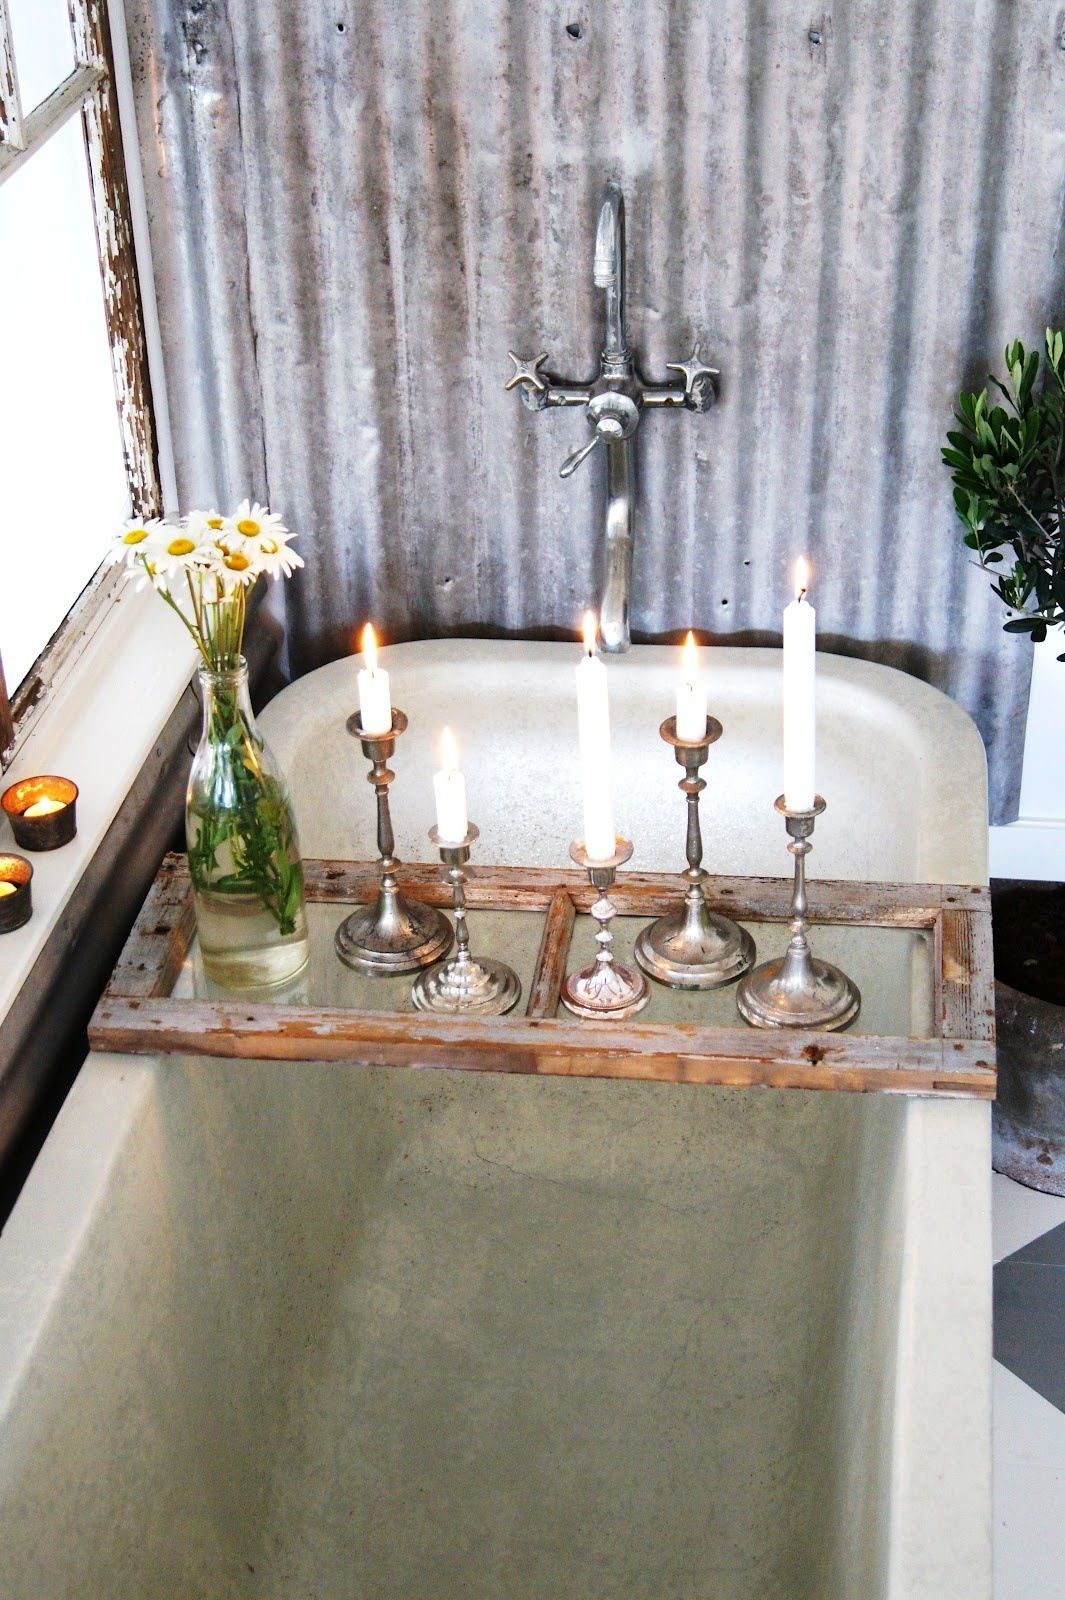 15 Marvelous Bathtub Tray Design Ideas To Enjoy Every Moment ...